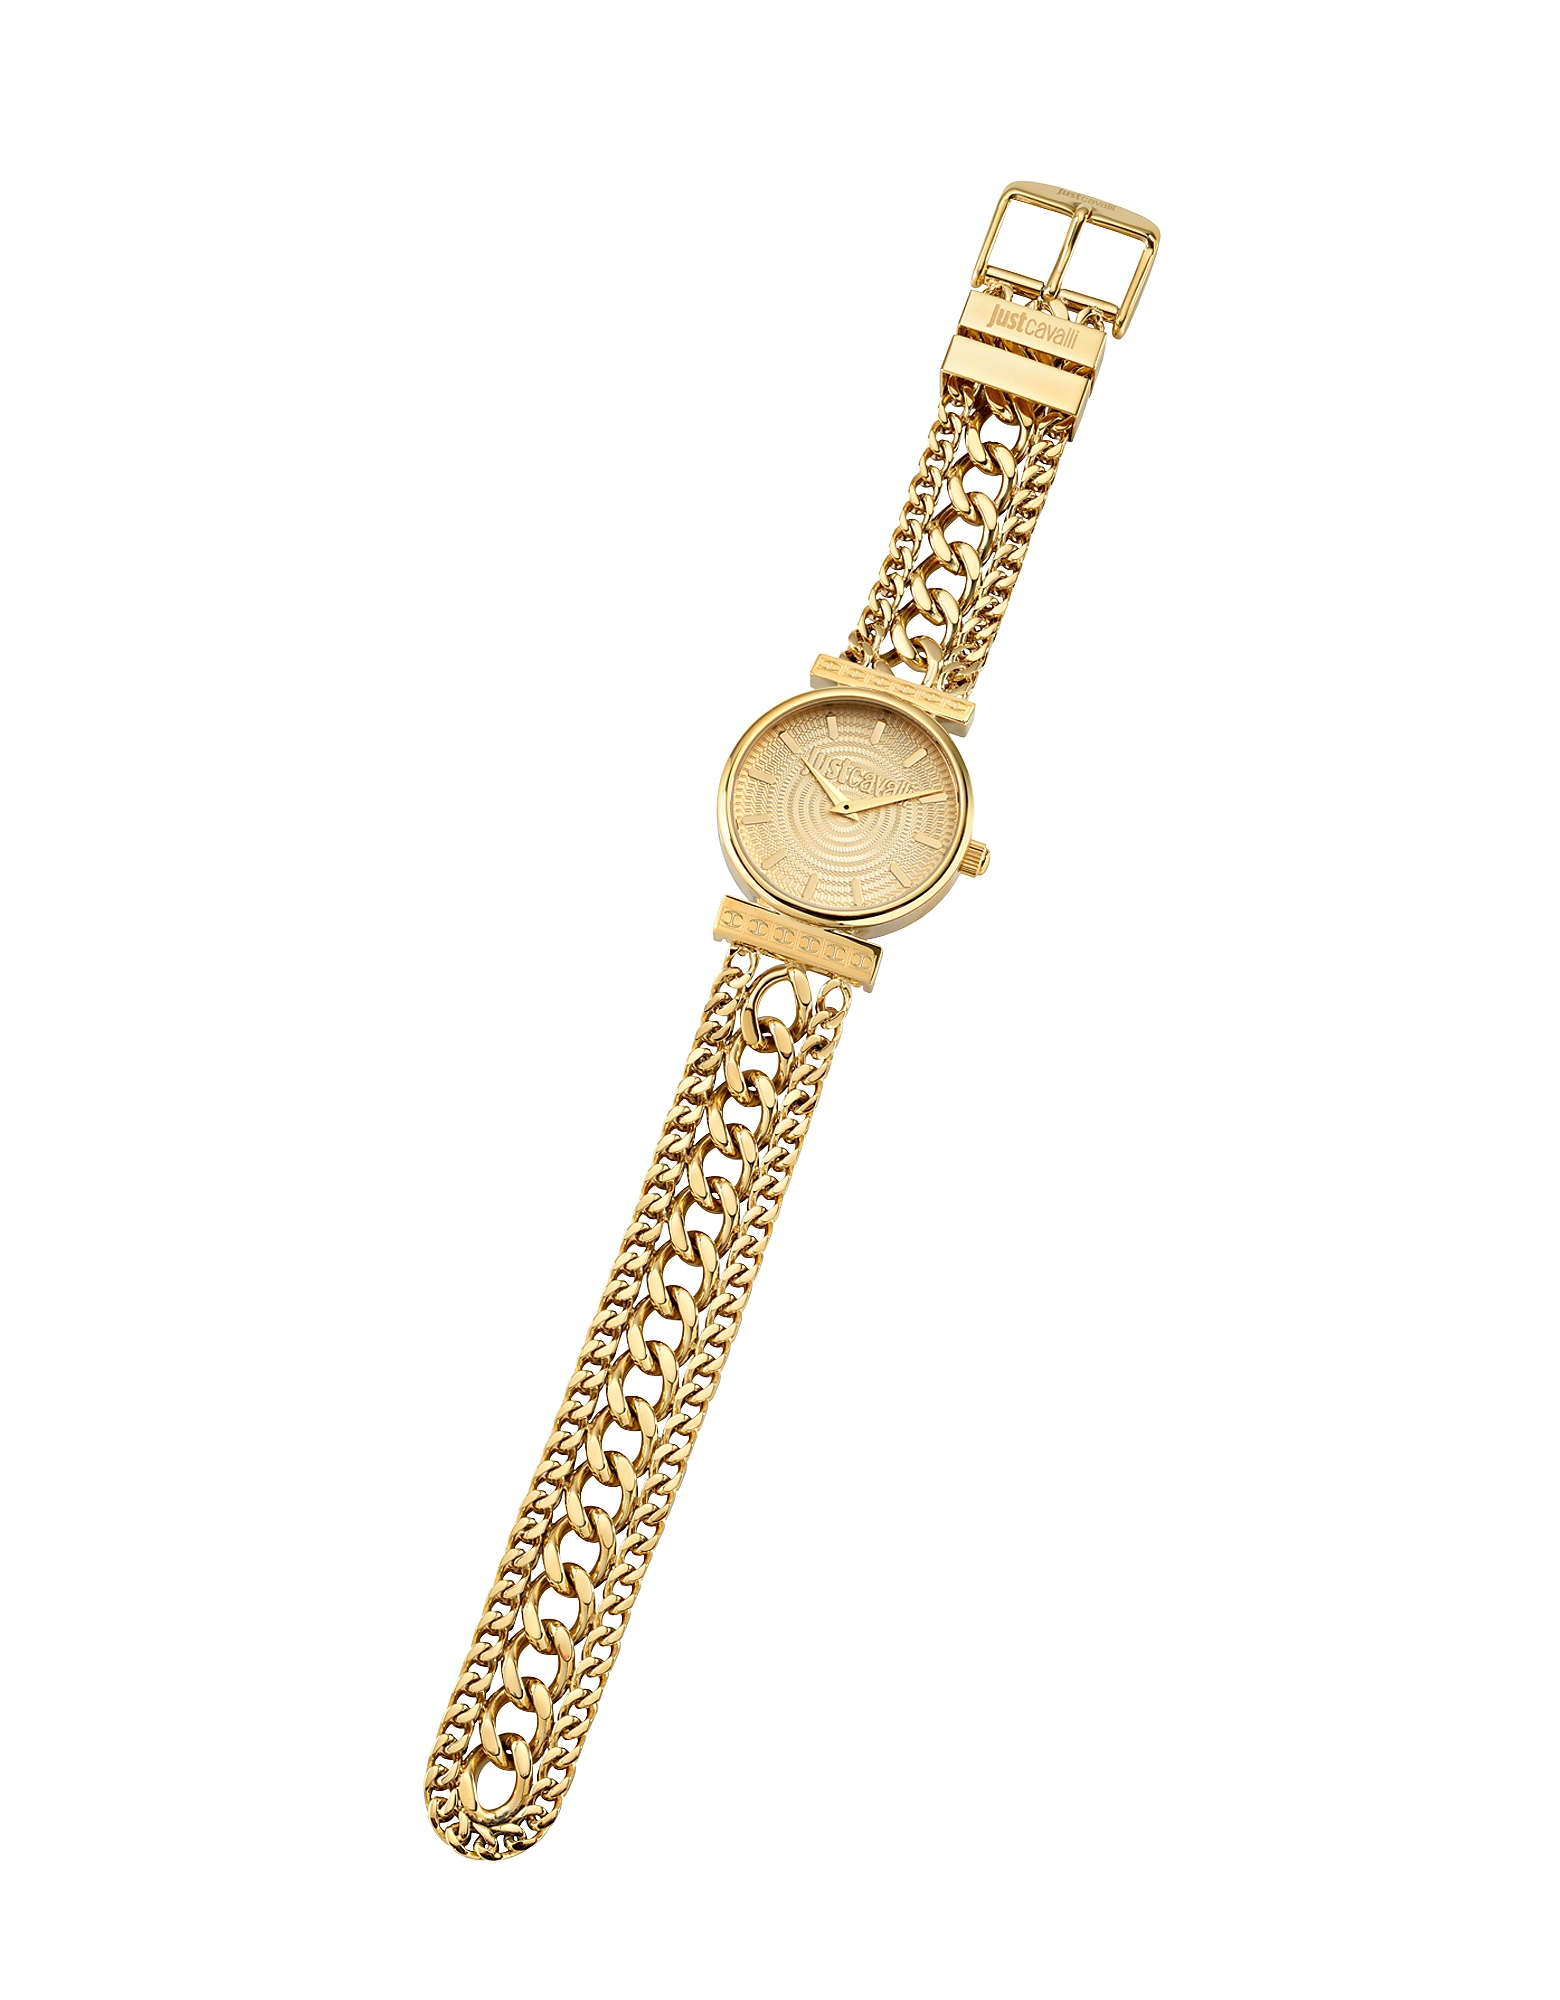 Just Cavalli Women's Watches, Just Couture Gold Tone Stainless Steel Women's Watch